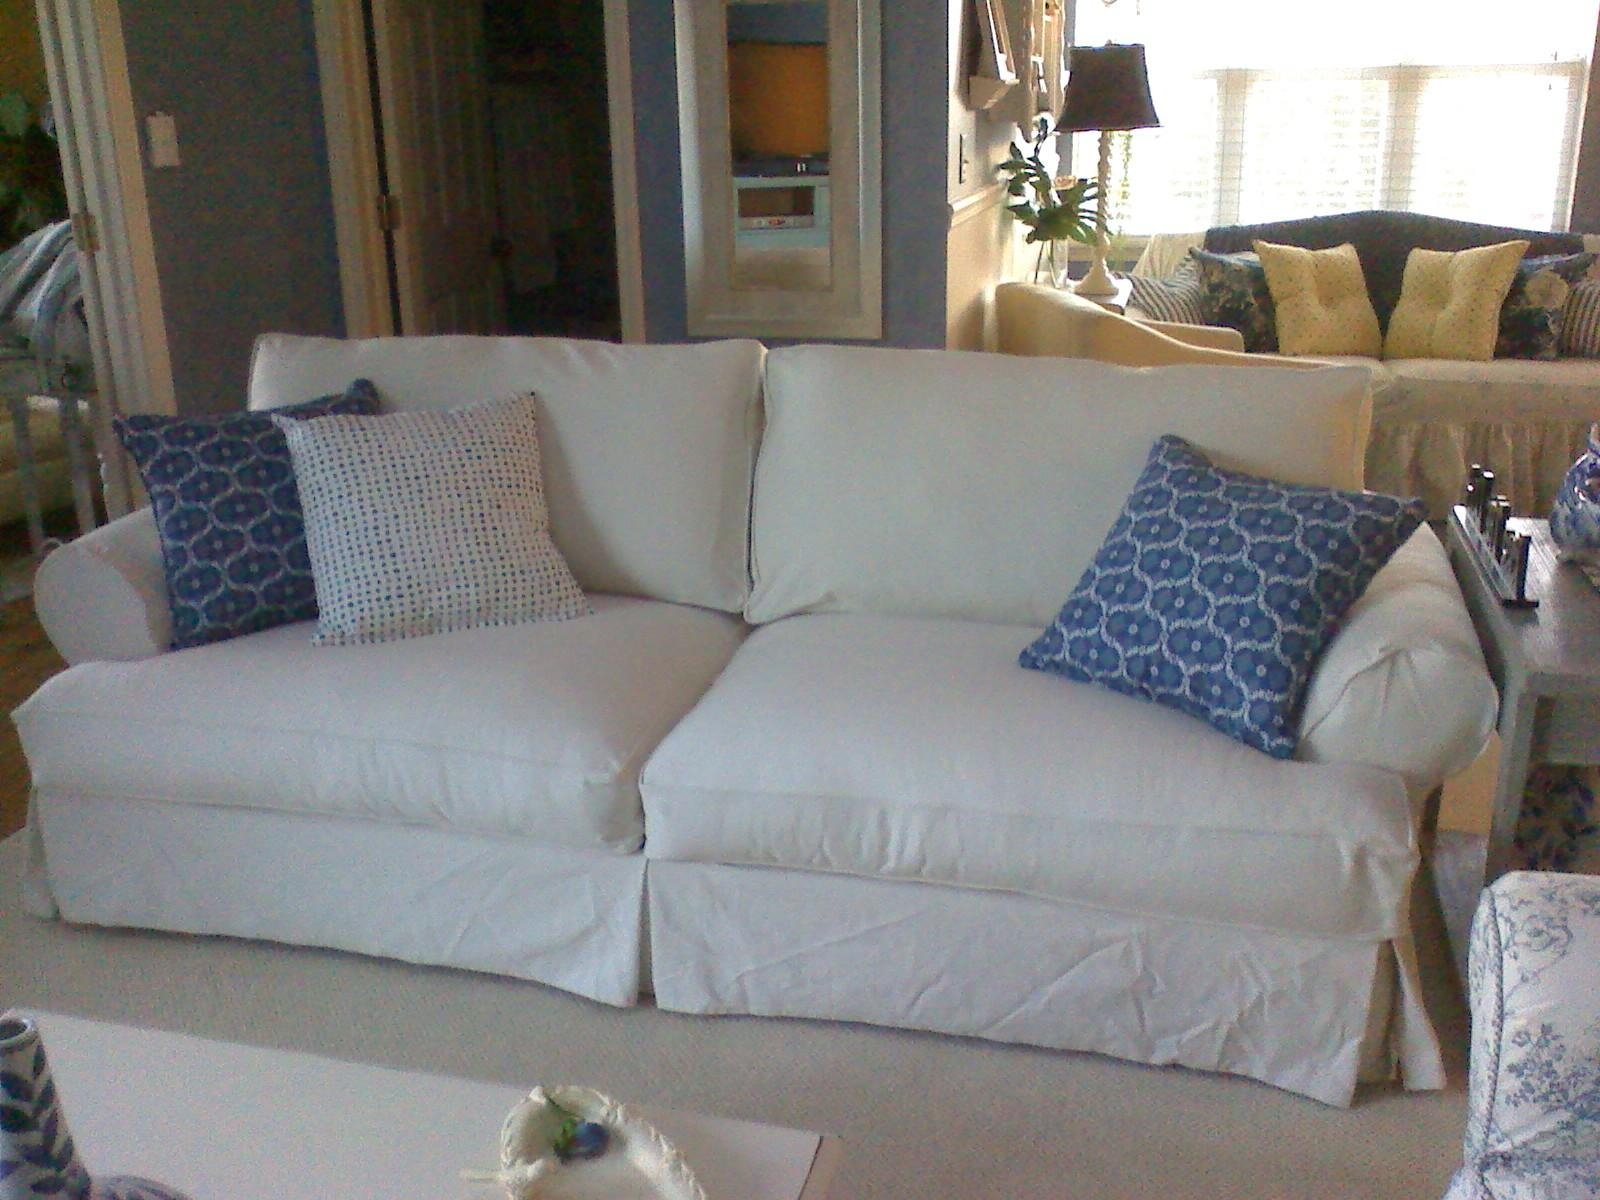 rowe nantucket sofa slipcover replacement top 10 brands 20 43 choices of slipcovers ideas